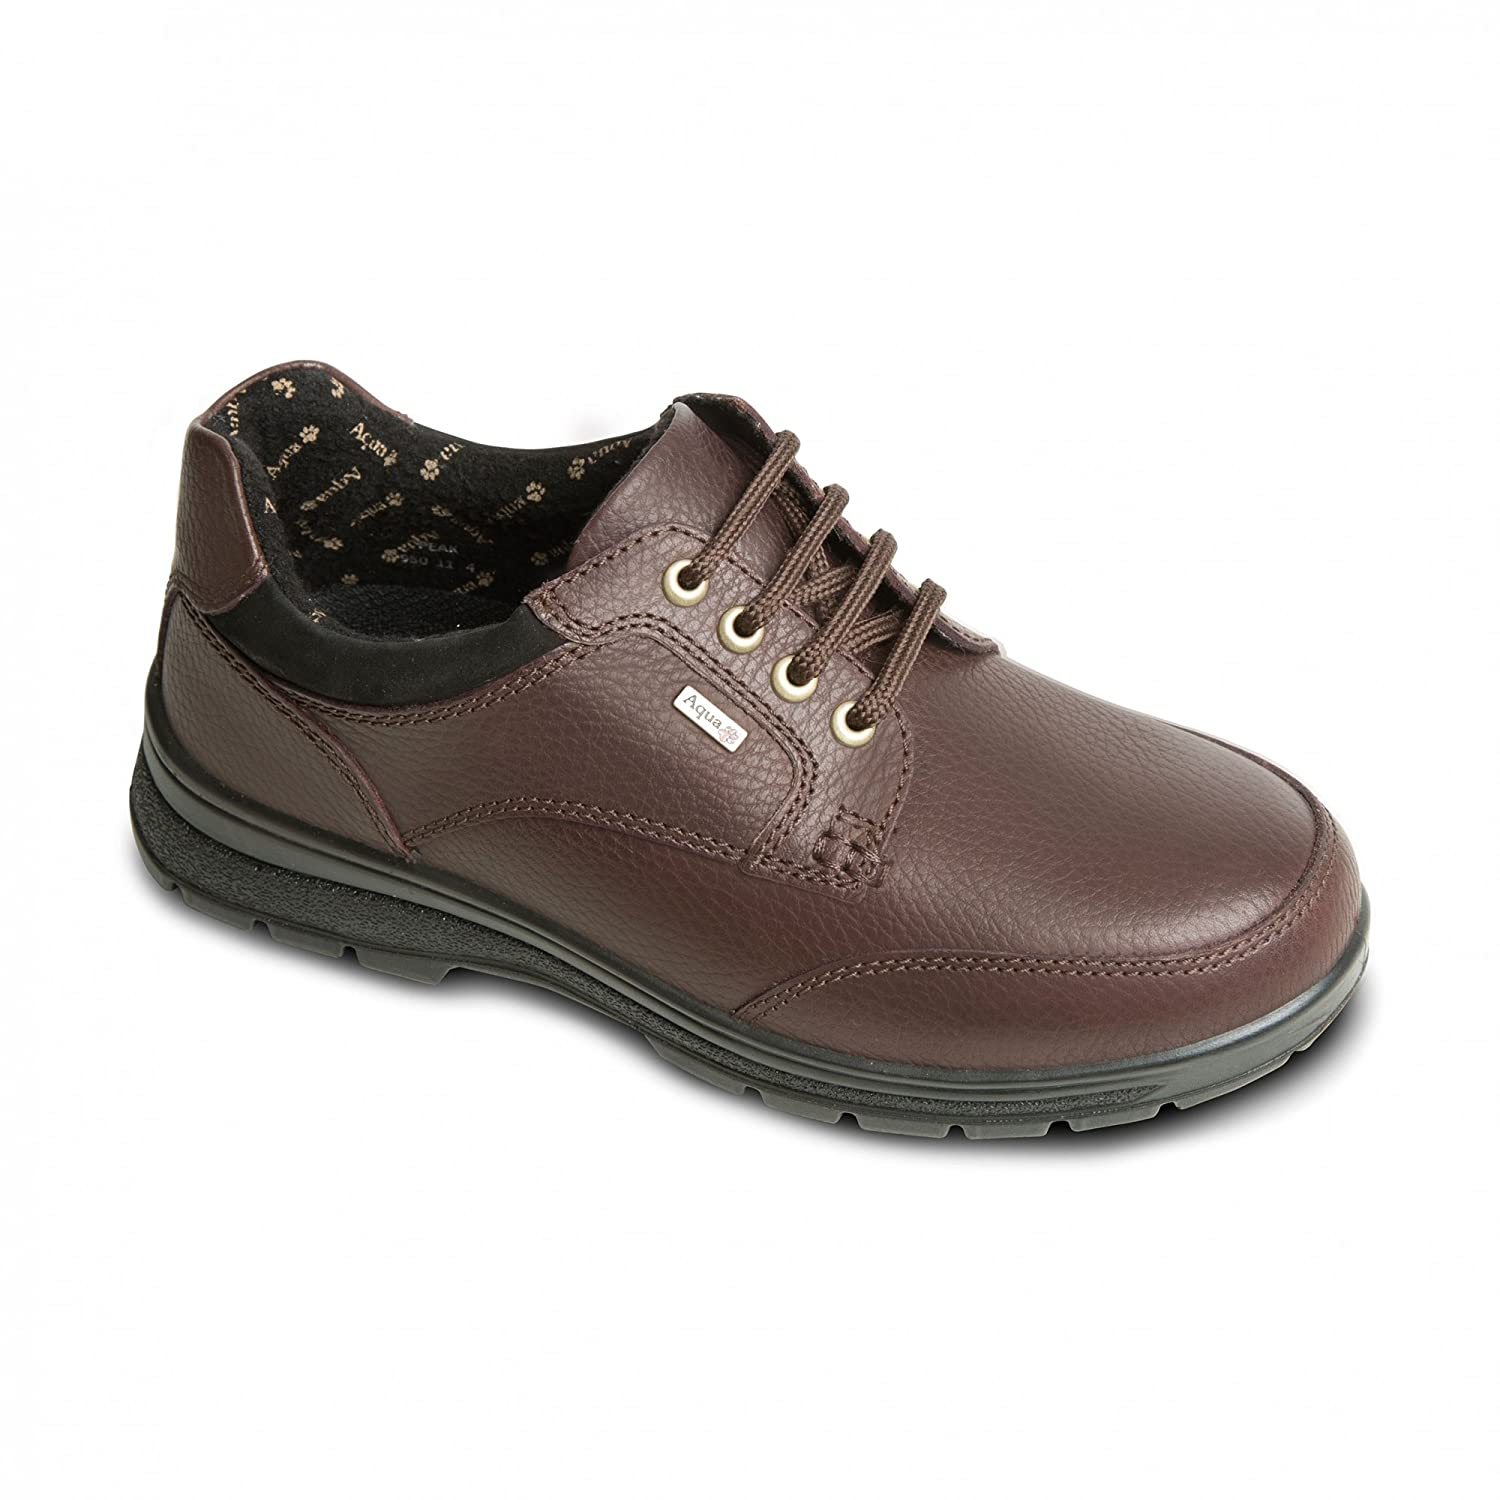 7cff279d2c89 Padders Peak Womens Casual Lace Up Shoes  Amazon.co.uk  Shoes   Bags